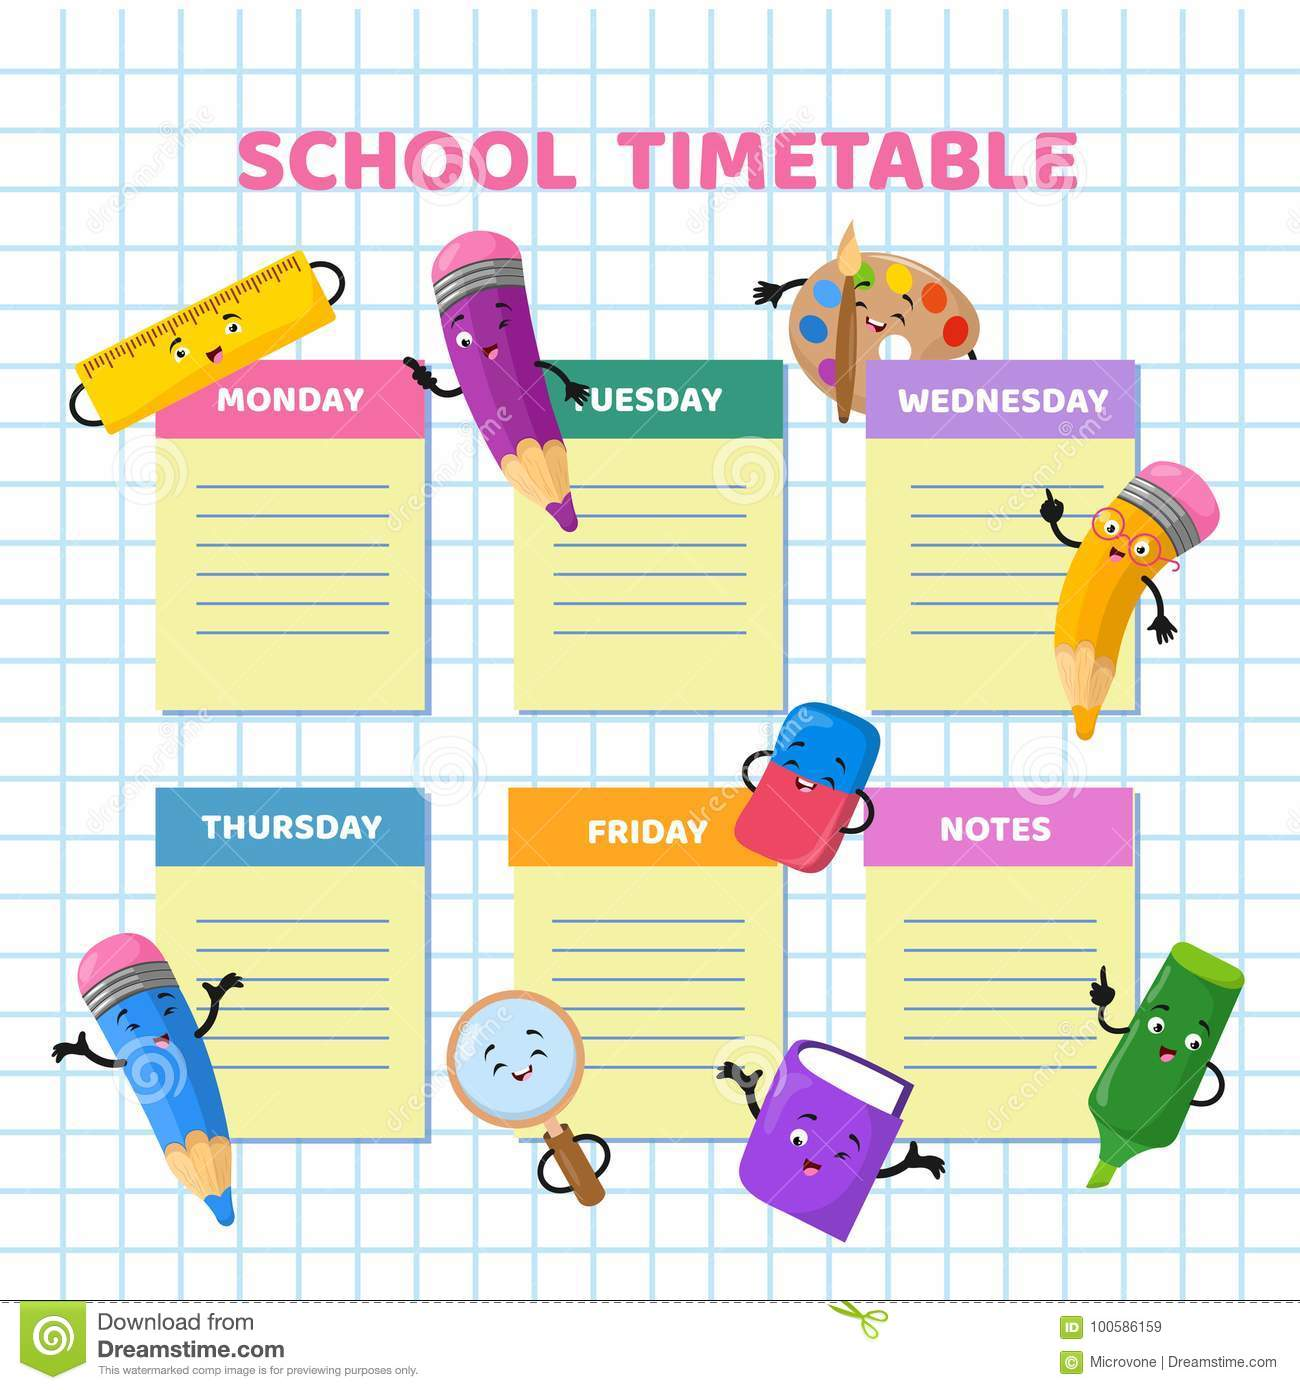 School Timetable With Funny Cartoon Stationery Characters